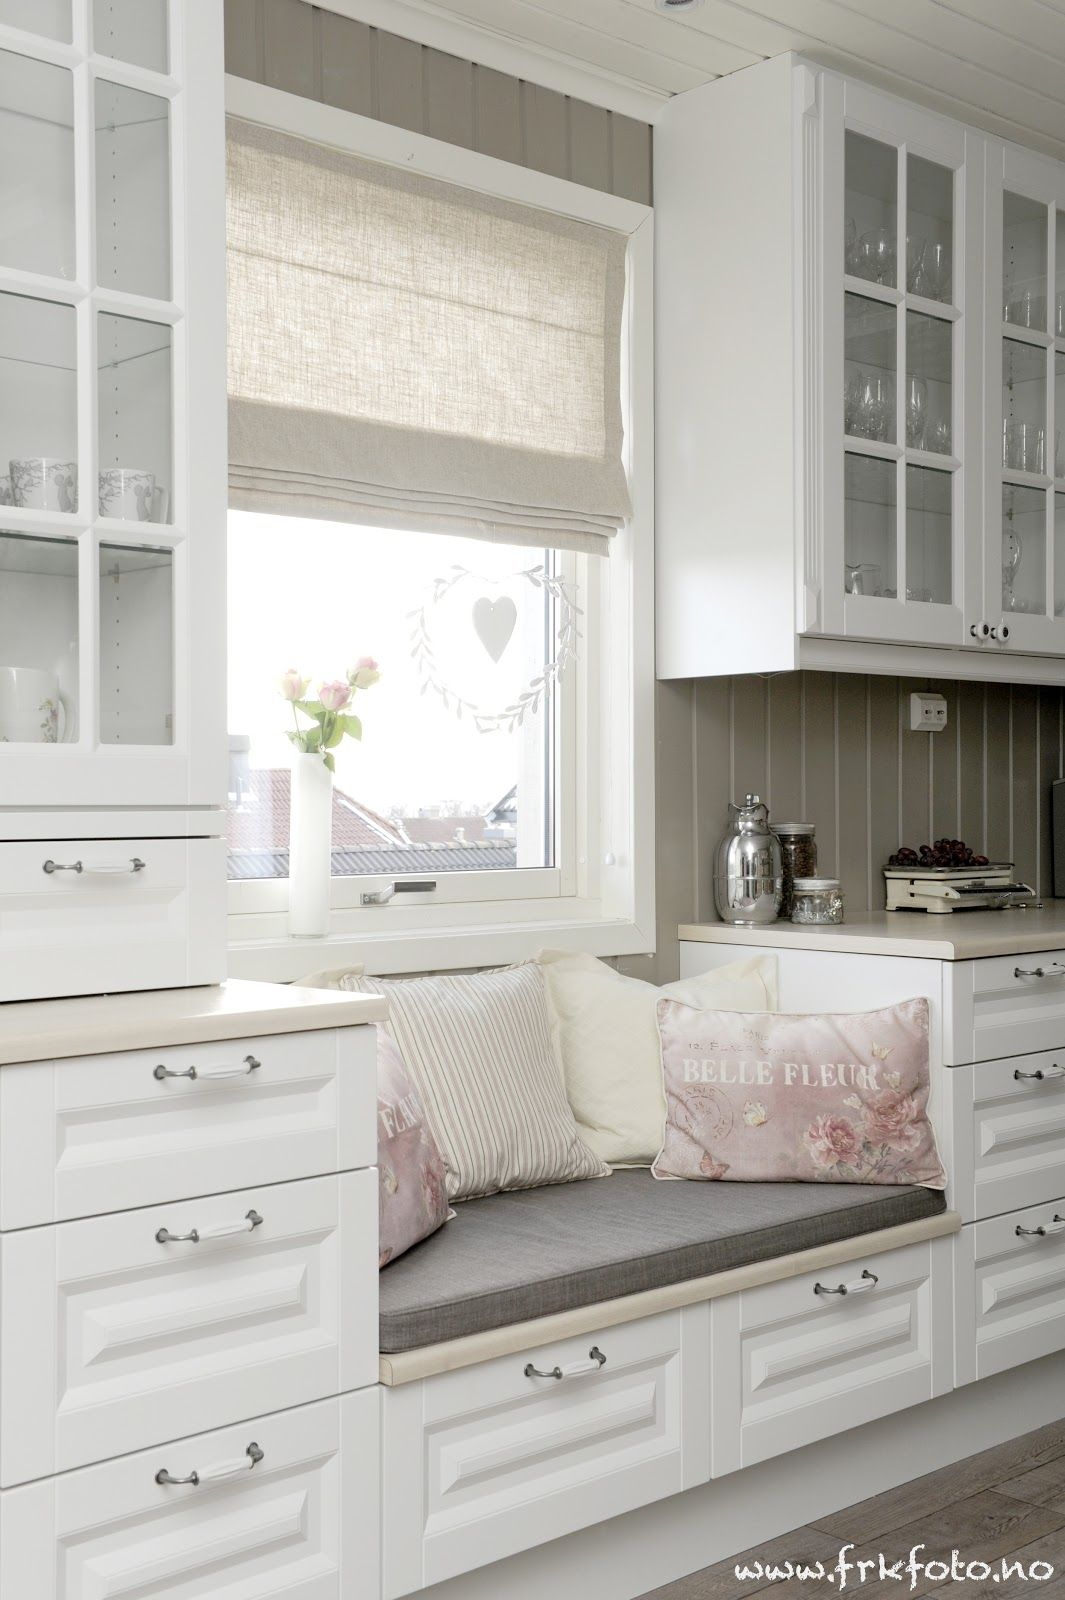 Window nook ideas  a cozy seat while your food is in the oven has never been more